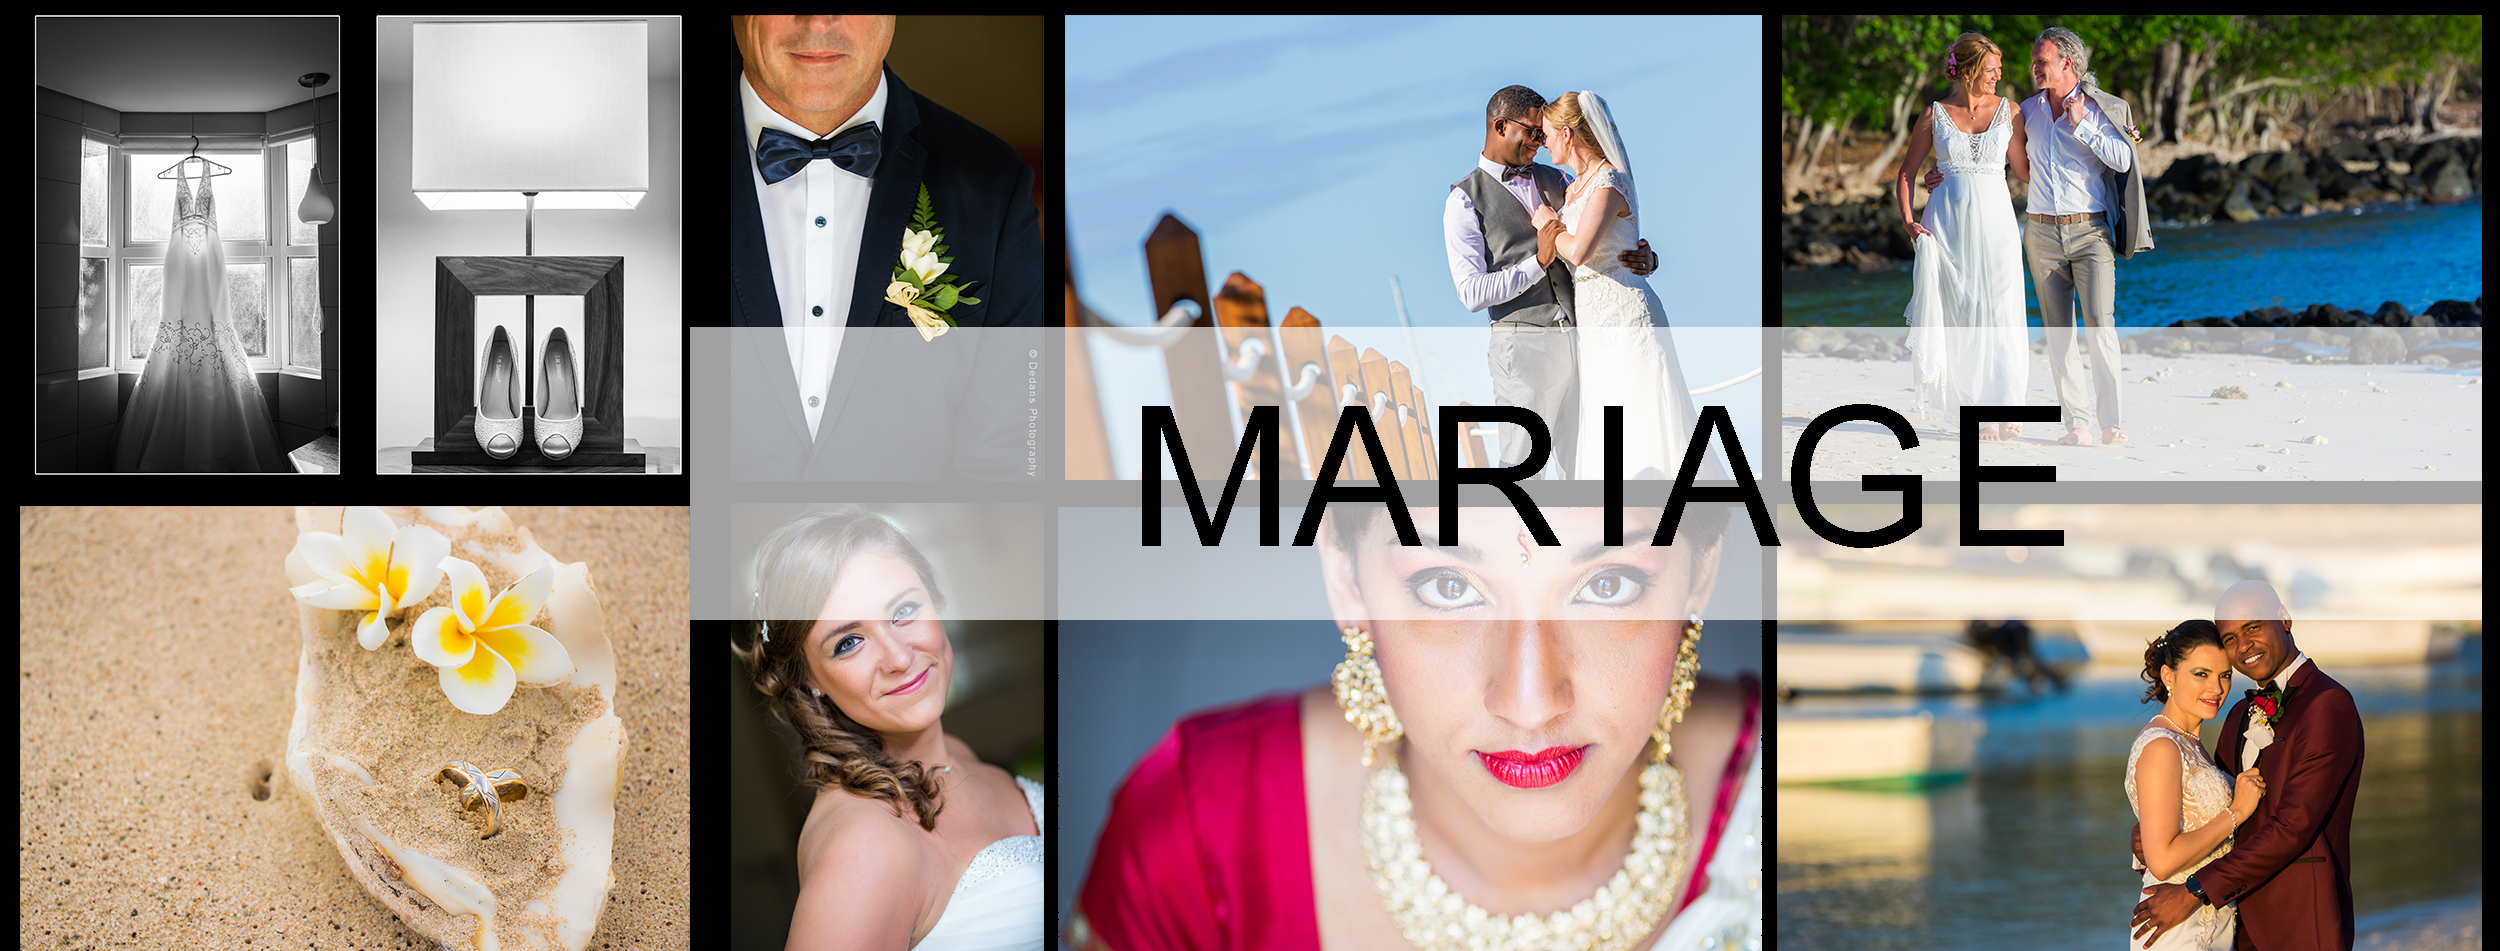 Collage de photos de mariage prisent par Dedans Photography.